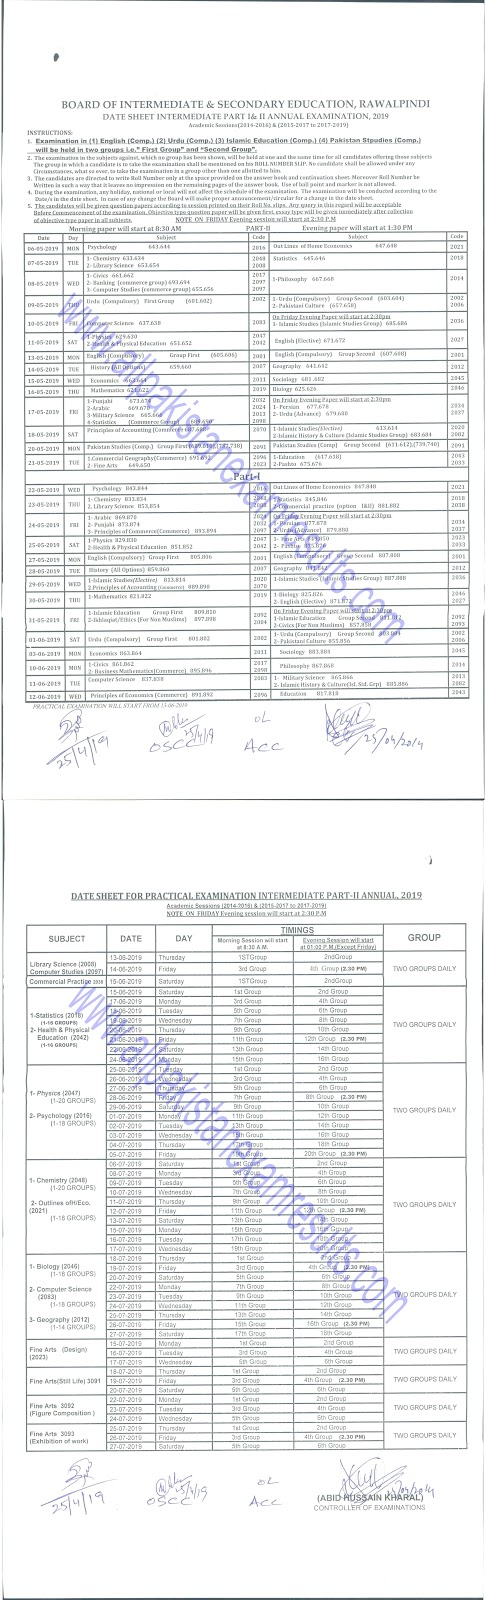 BISE Rawalpindi Inter Date Sheet 2019